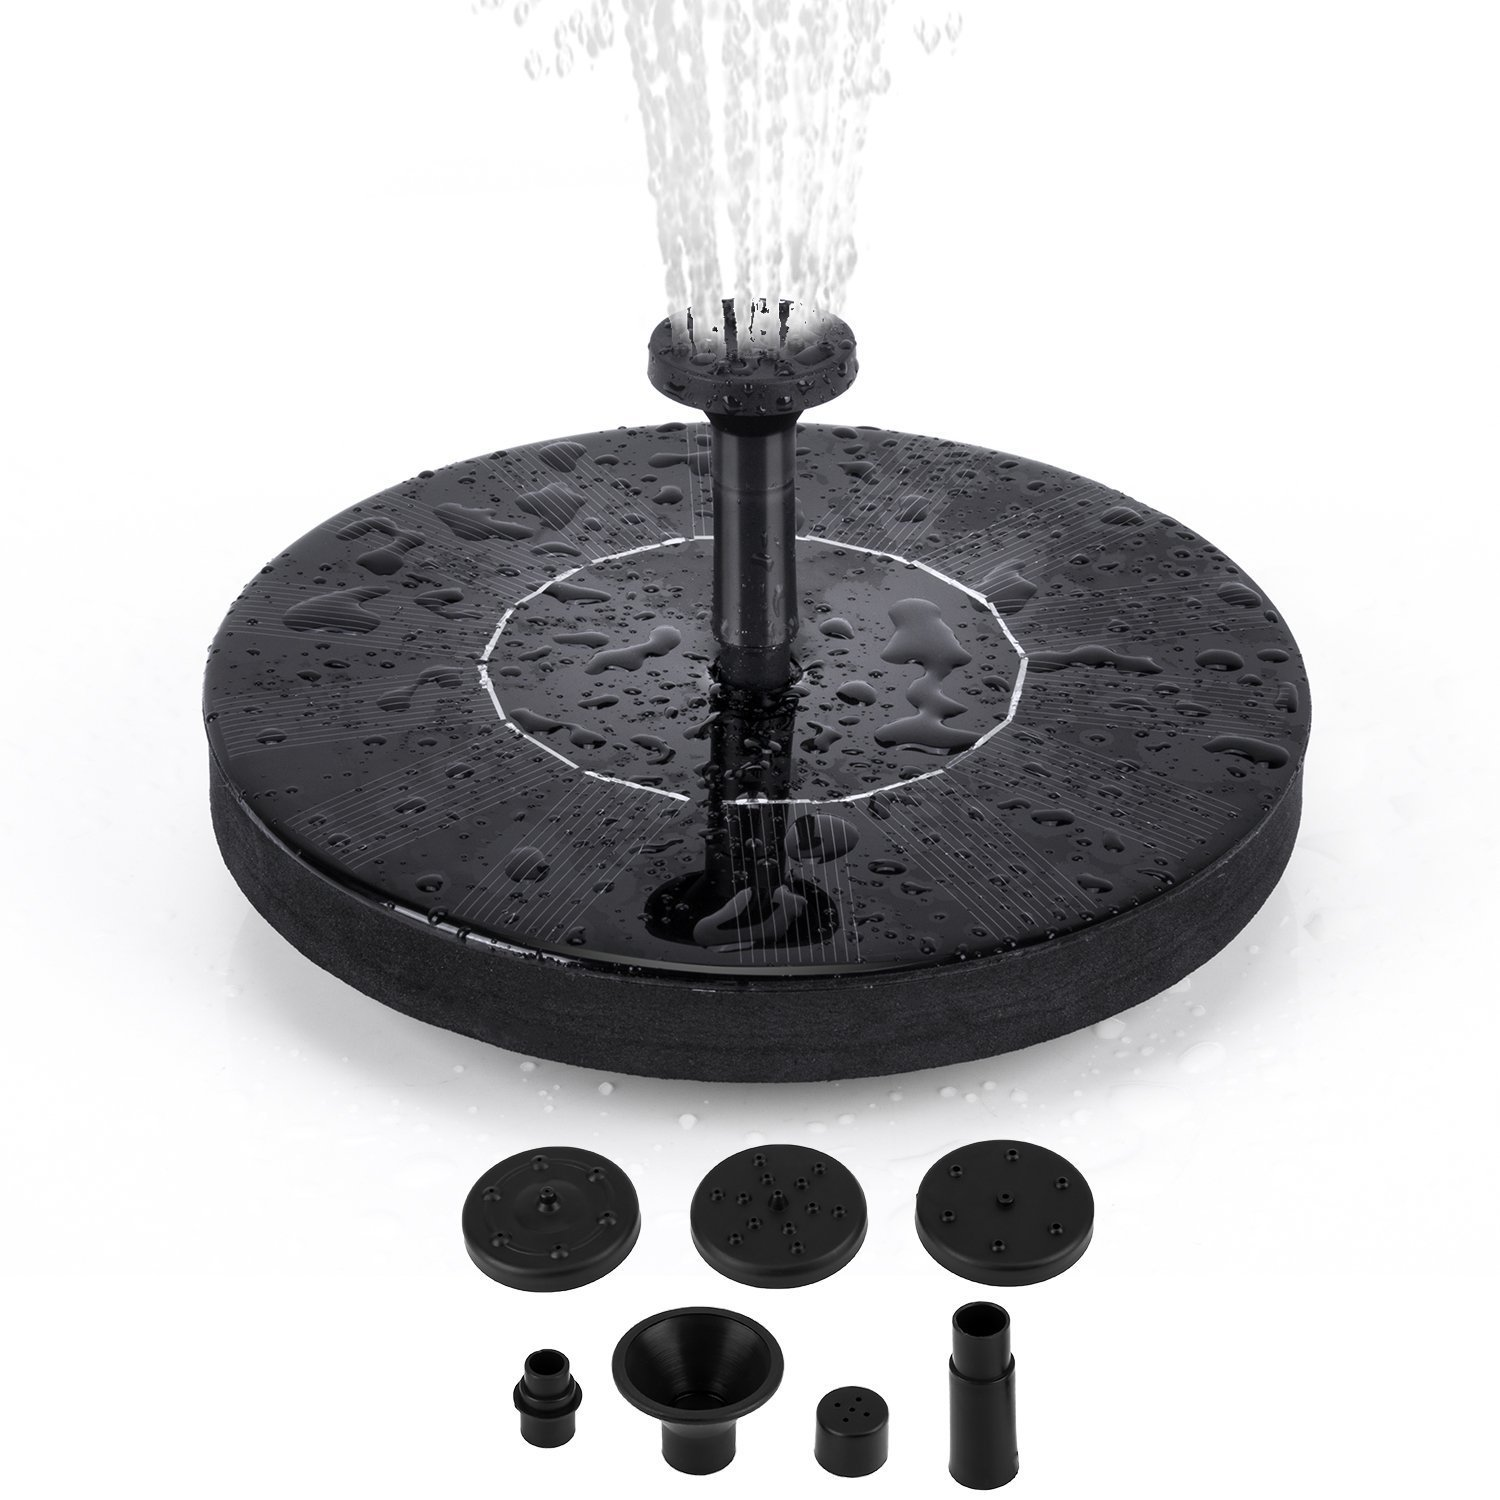 e Solar Fountain Pump, 1.4W Free Standing Water Fountain Pump Kit with 4 Different Spray Heads for Bird Bath, Fish Tank, Small Pond and Garden